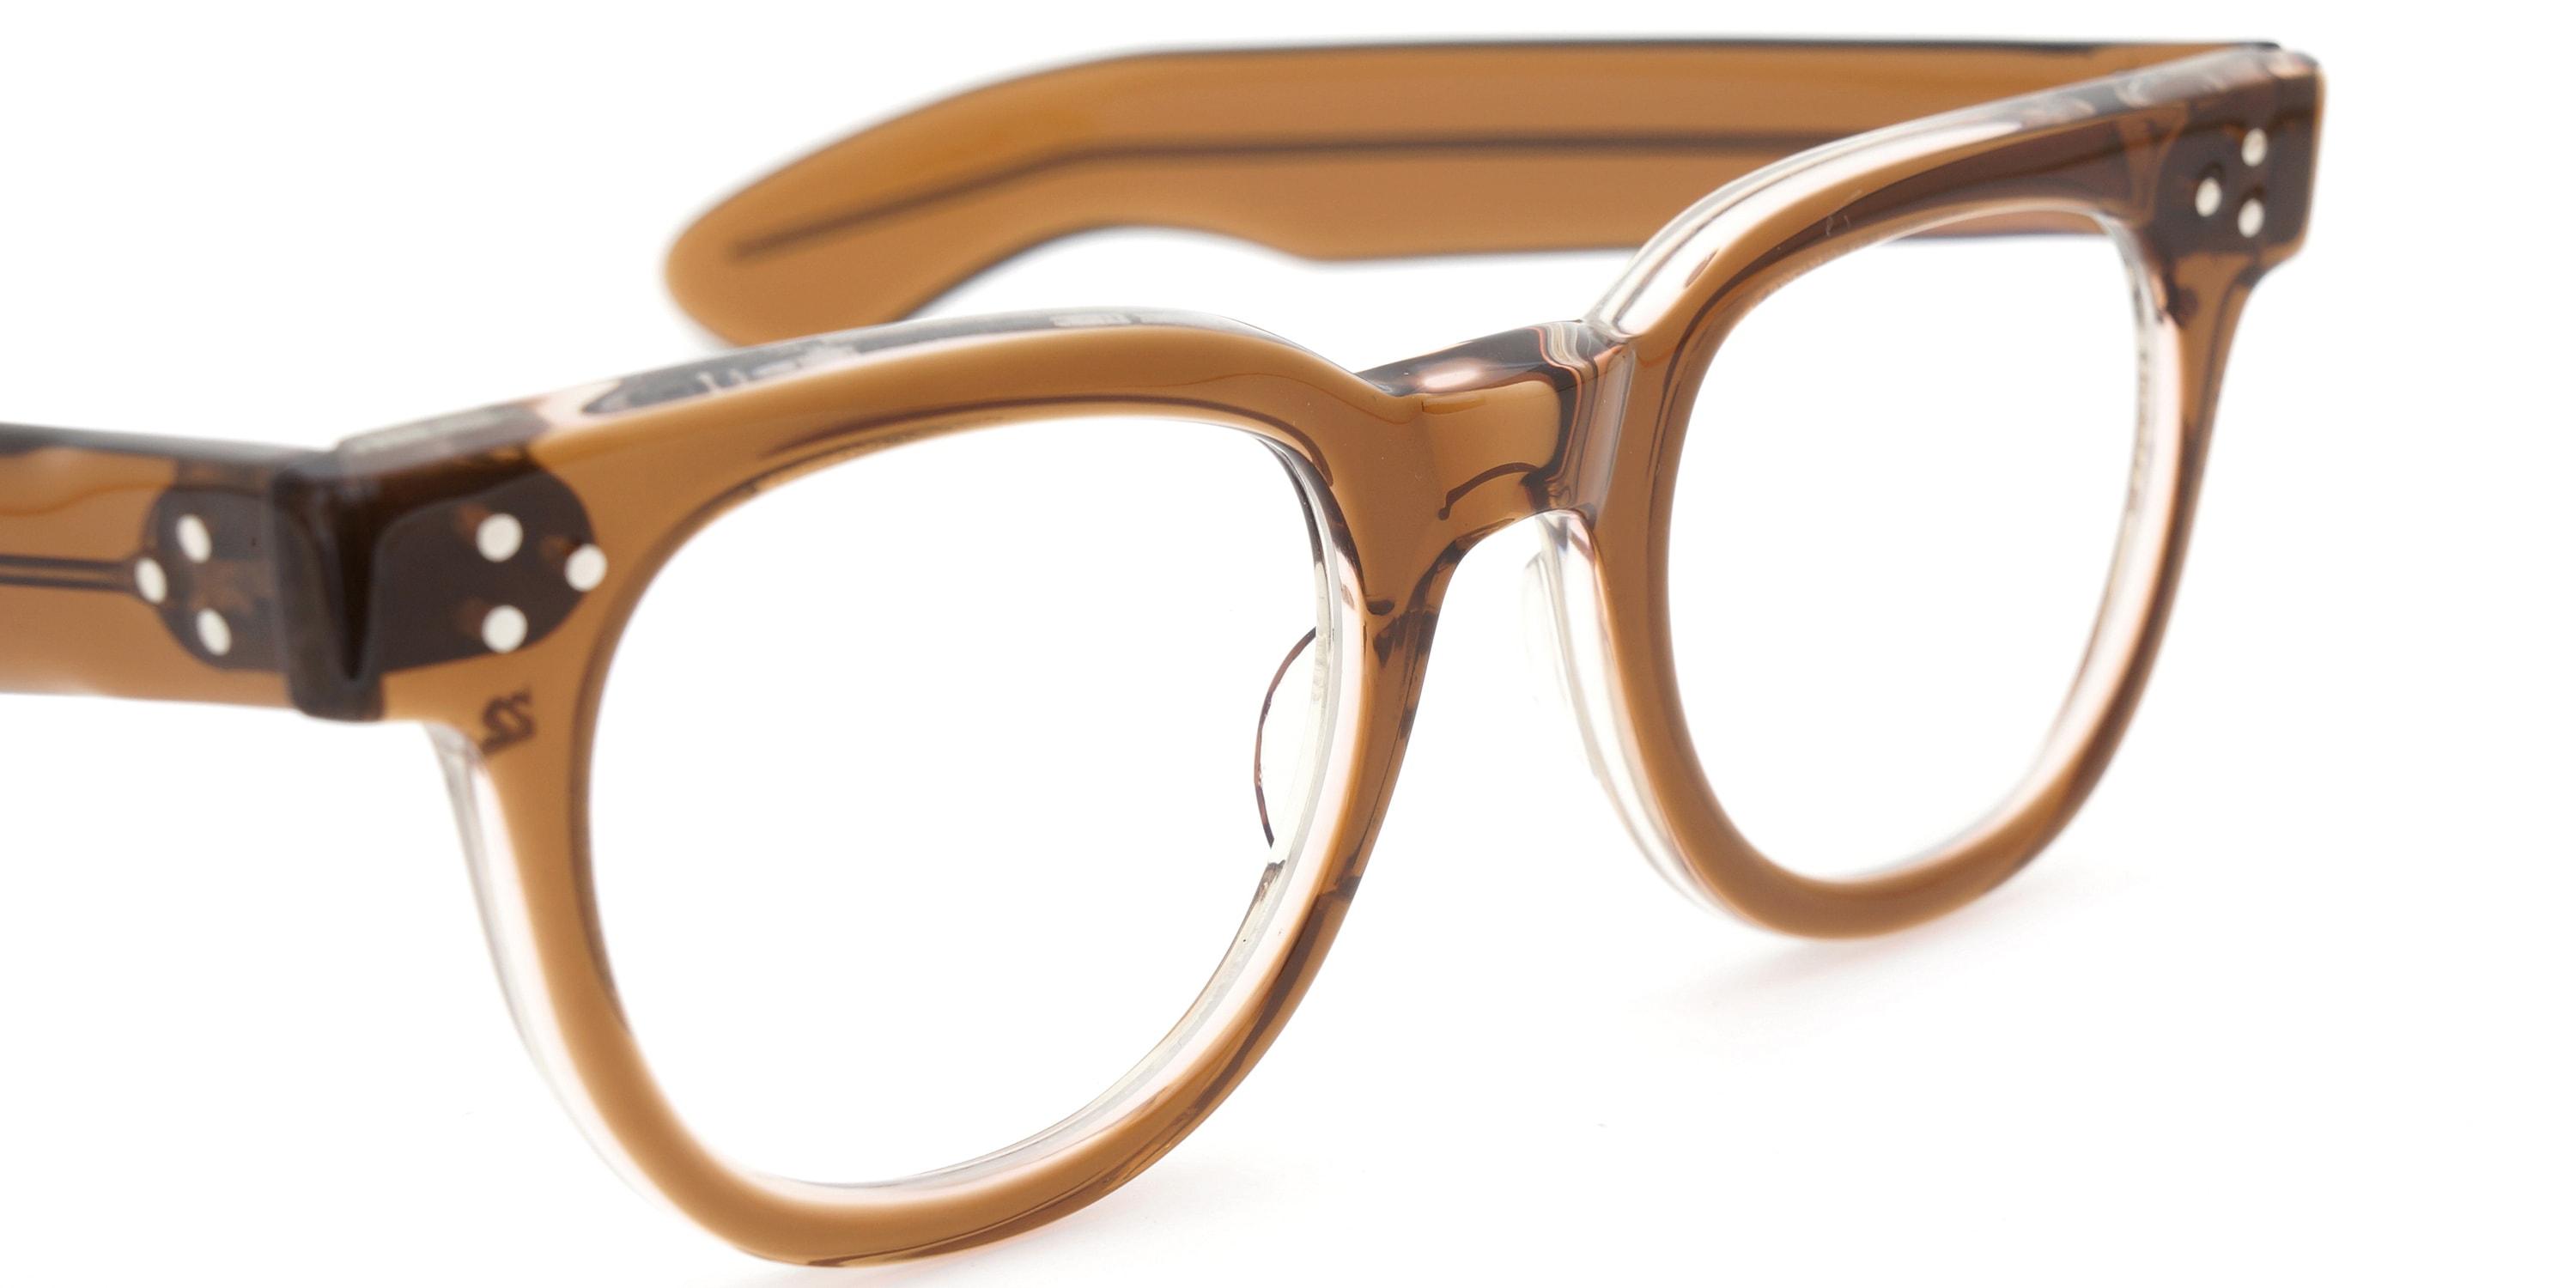 The Spectacle メガネ 1950s-70s TART OPTICAL FDR (FRAME USA) BROWN 44-22 イメージ8